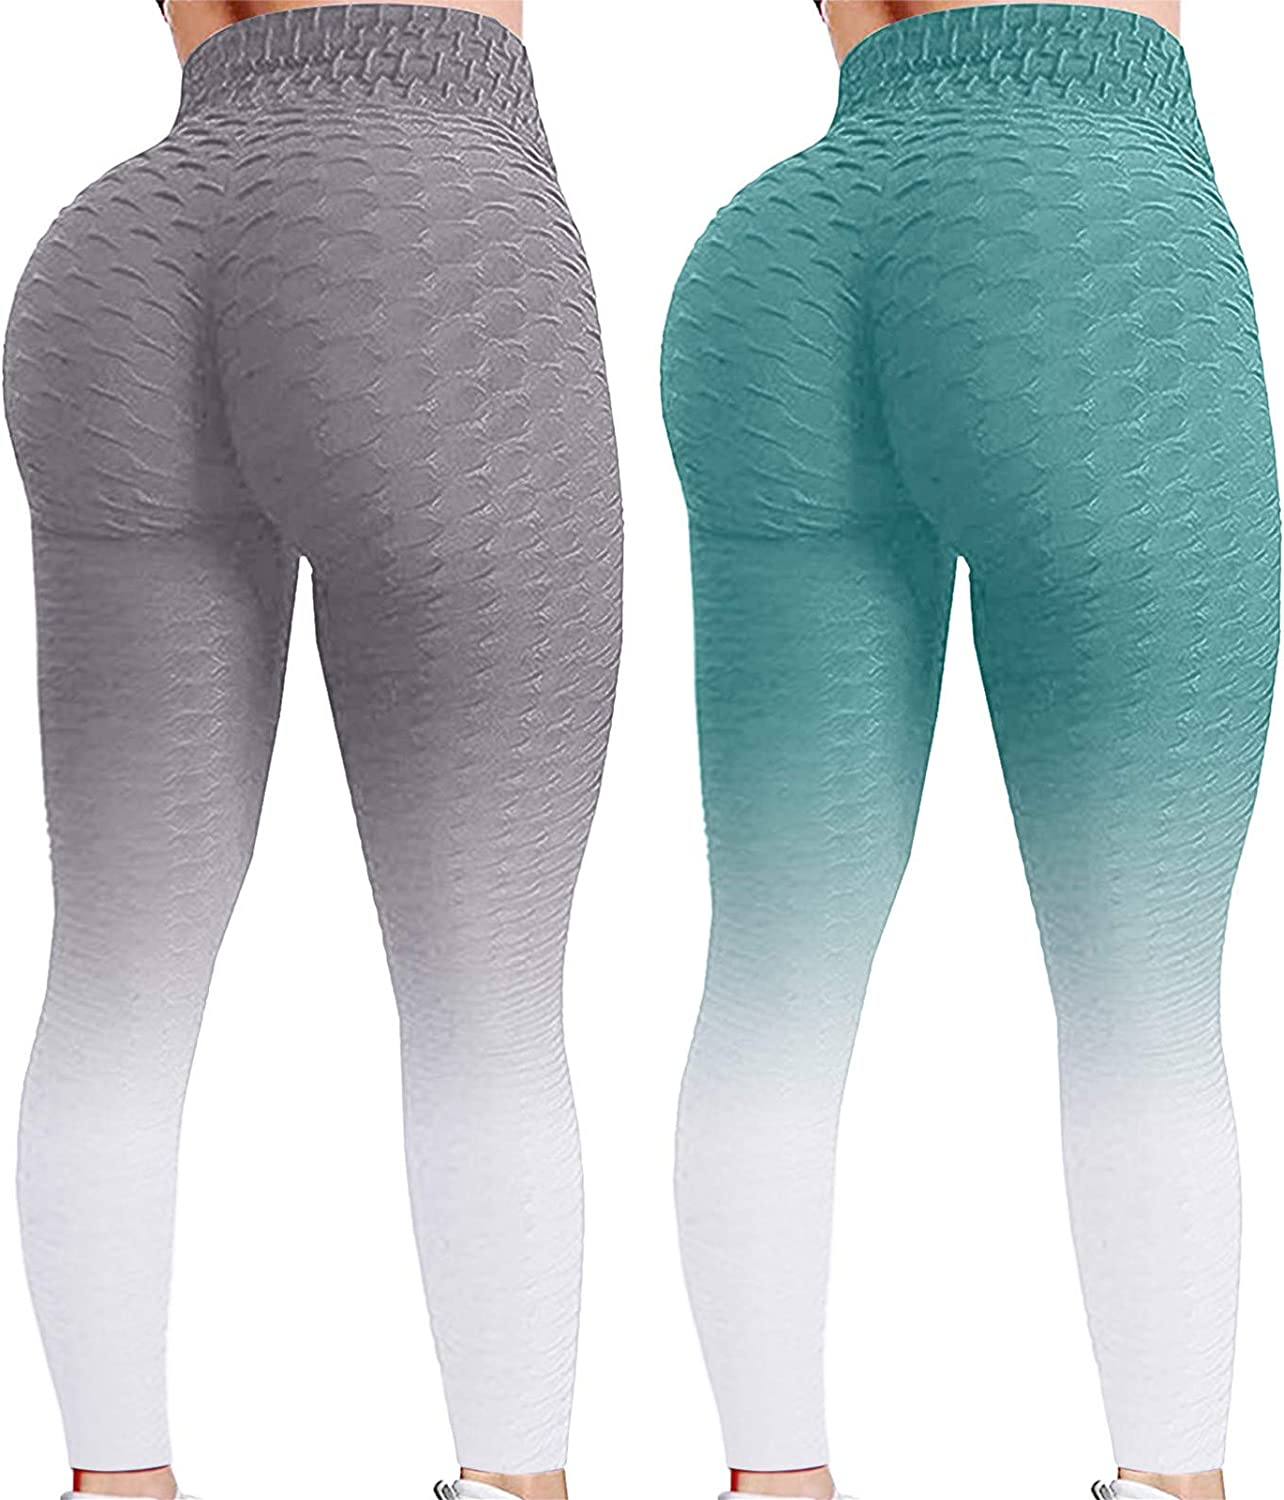 Yoga Pants for Women 2 Pack Leggin Bubble Max Direct store 53% OFF Lifting Hip Waist High